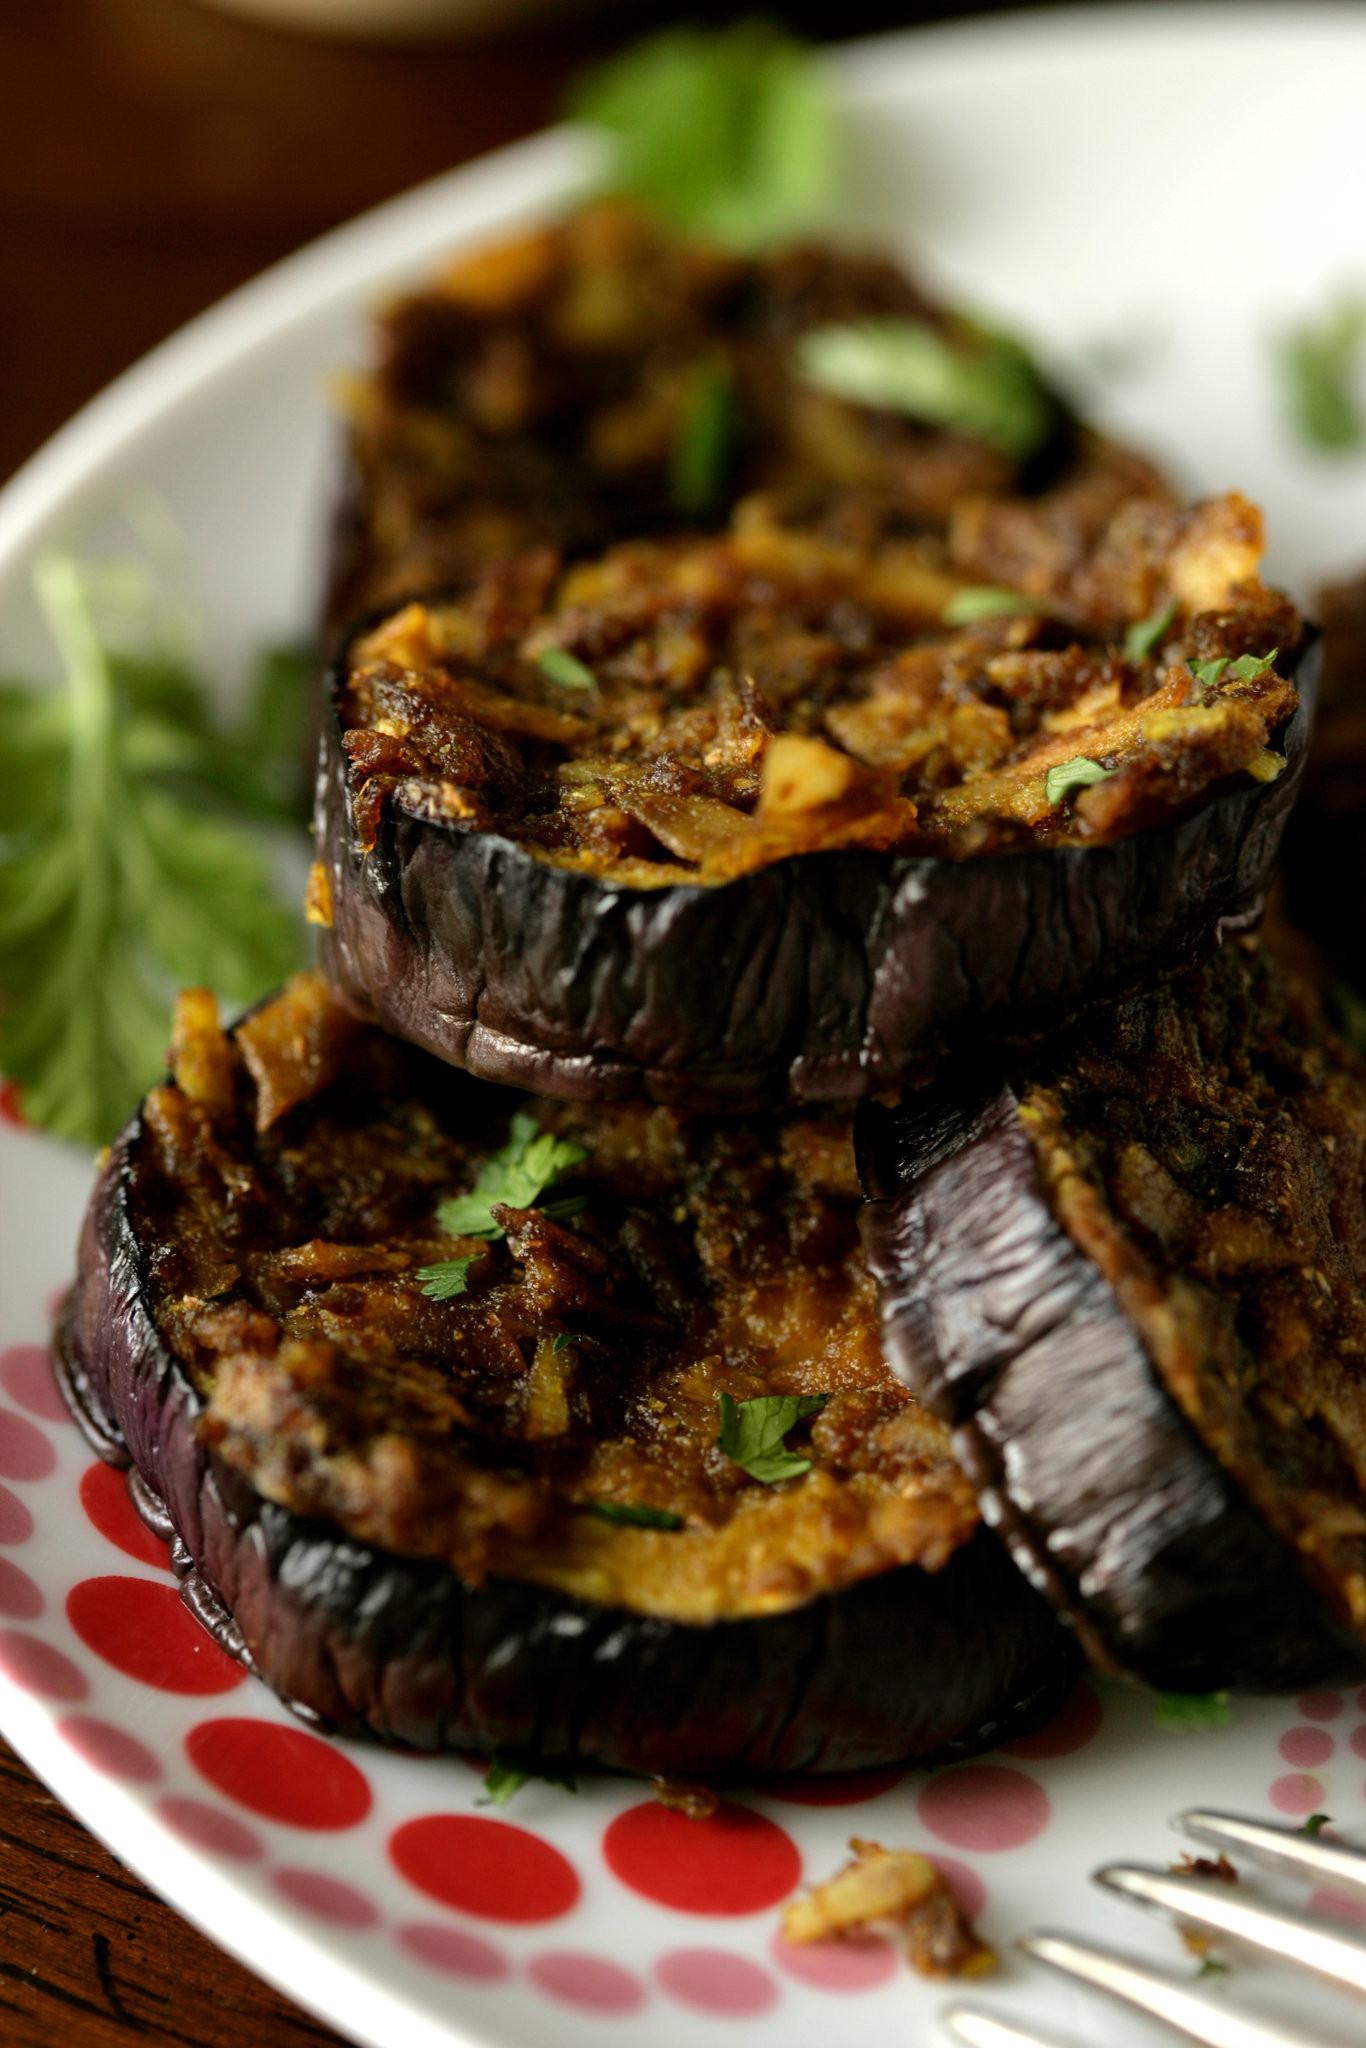 Indian Eggplant Recipes  South Indian Eggplant Curry Recipe NYT Cooking